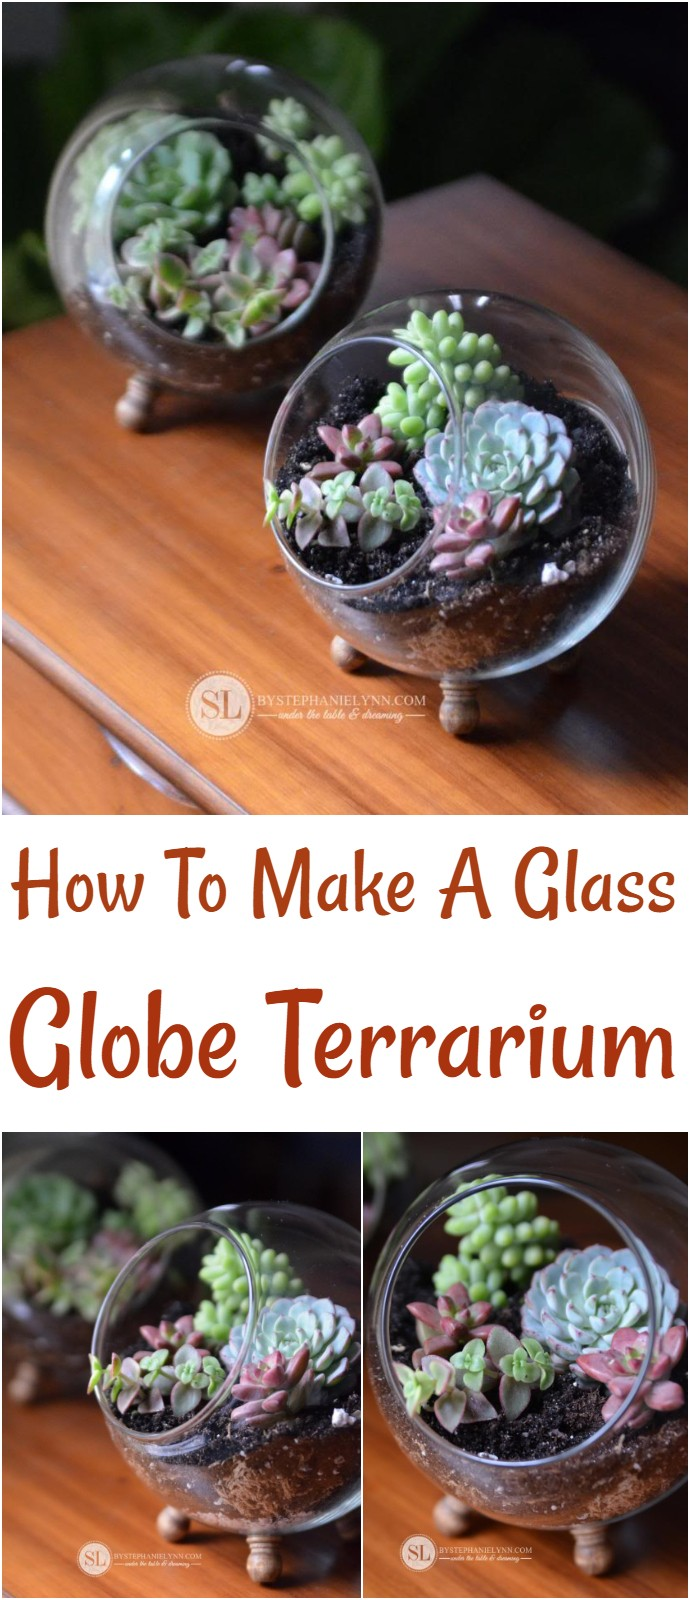 How To Make A Glass Globe Terrarium